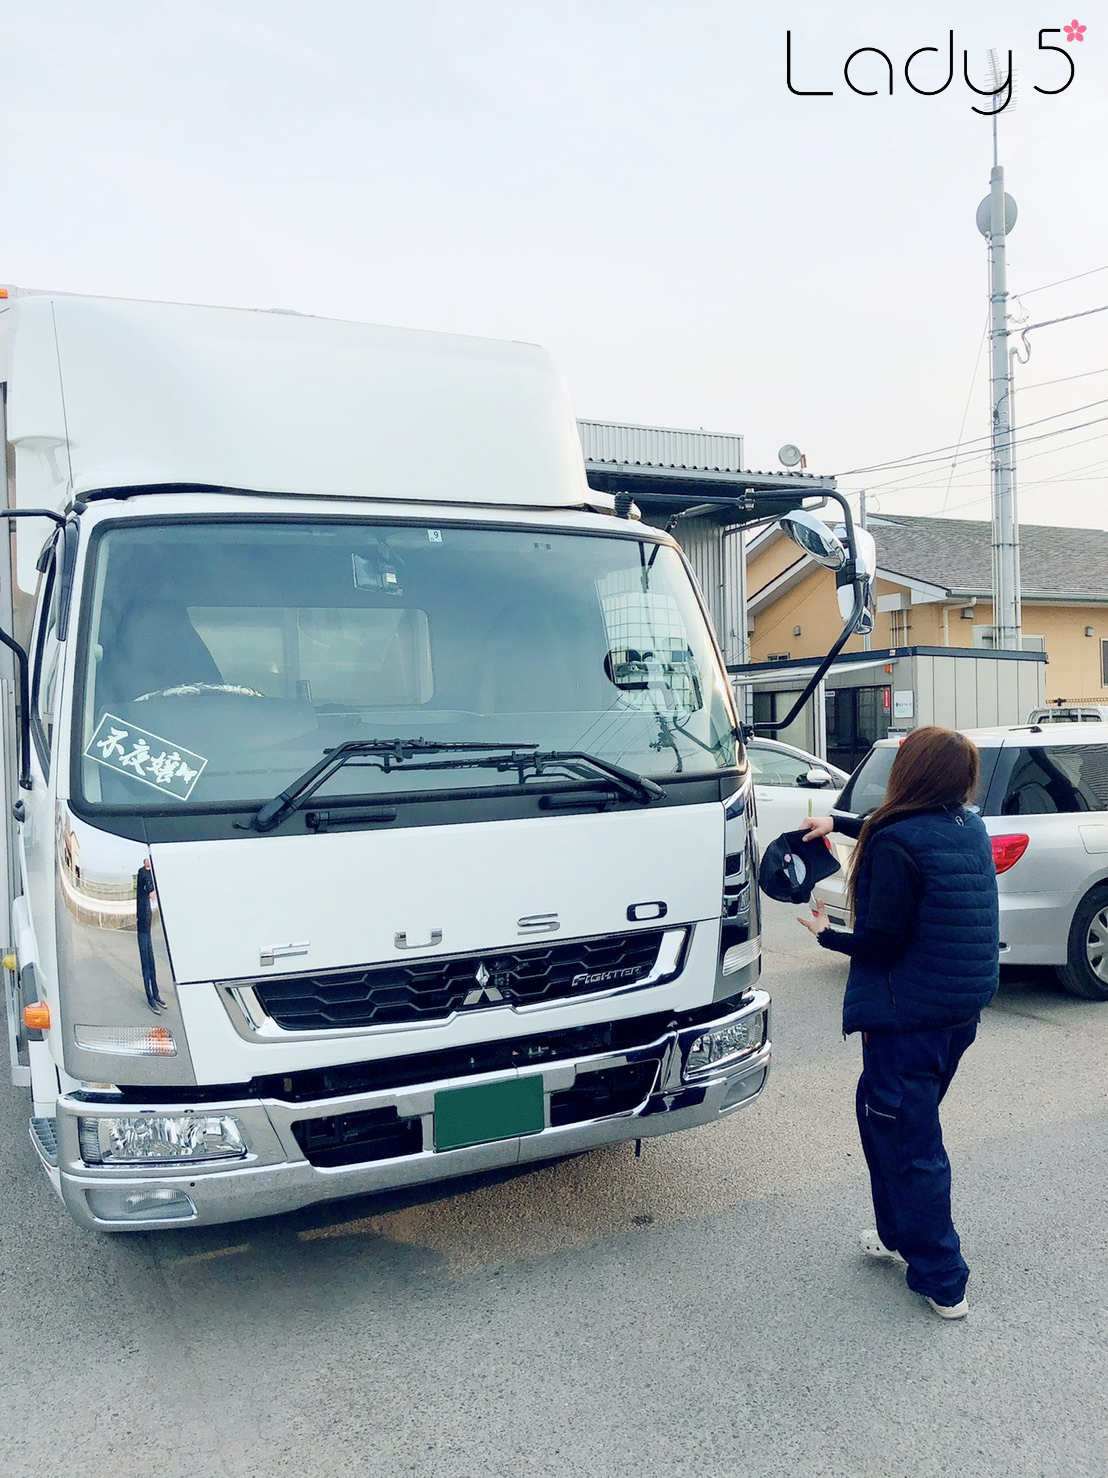 trucklady5_interview_macchi3